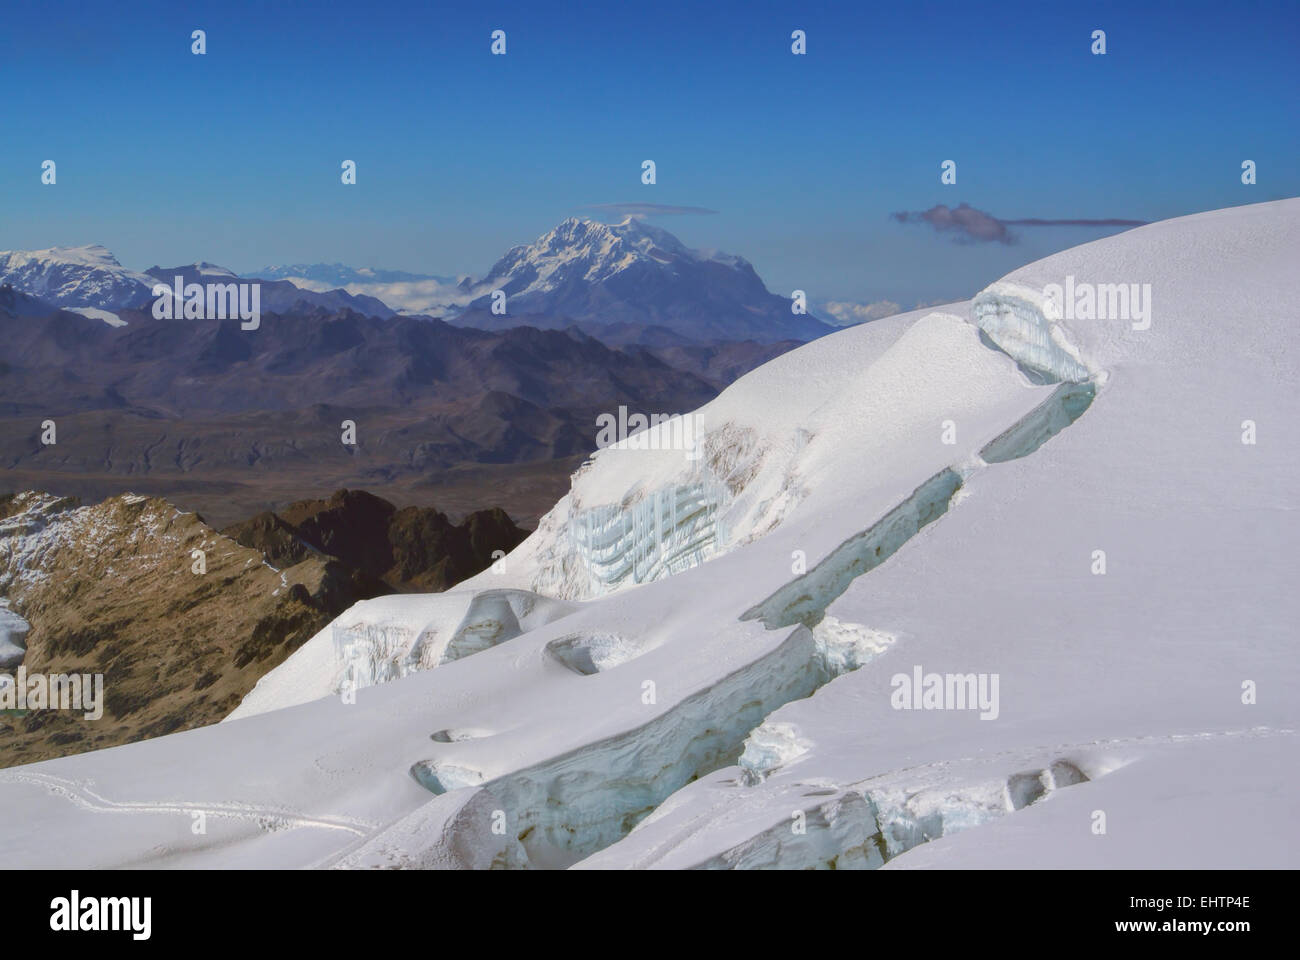 Picturesque view from near top of Huayna Potosi mountain in Bolivia - Stock Image